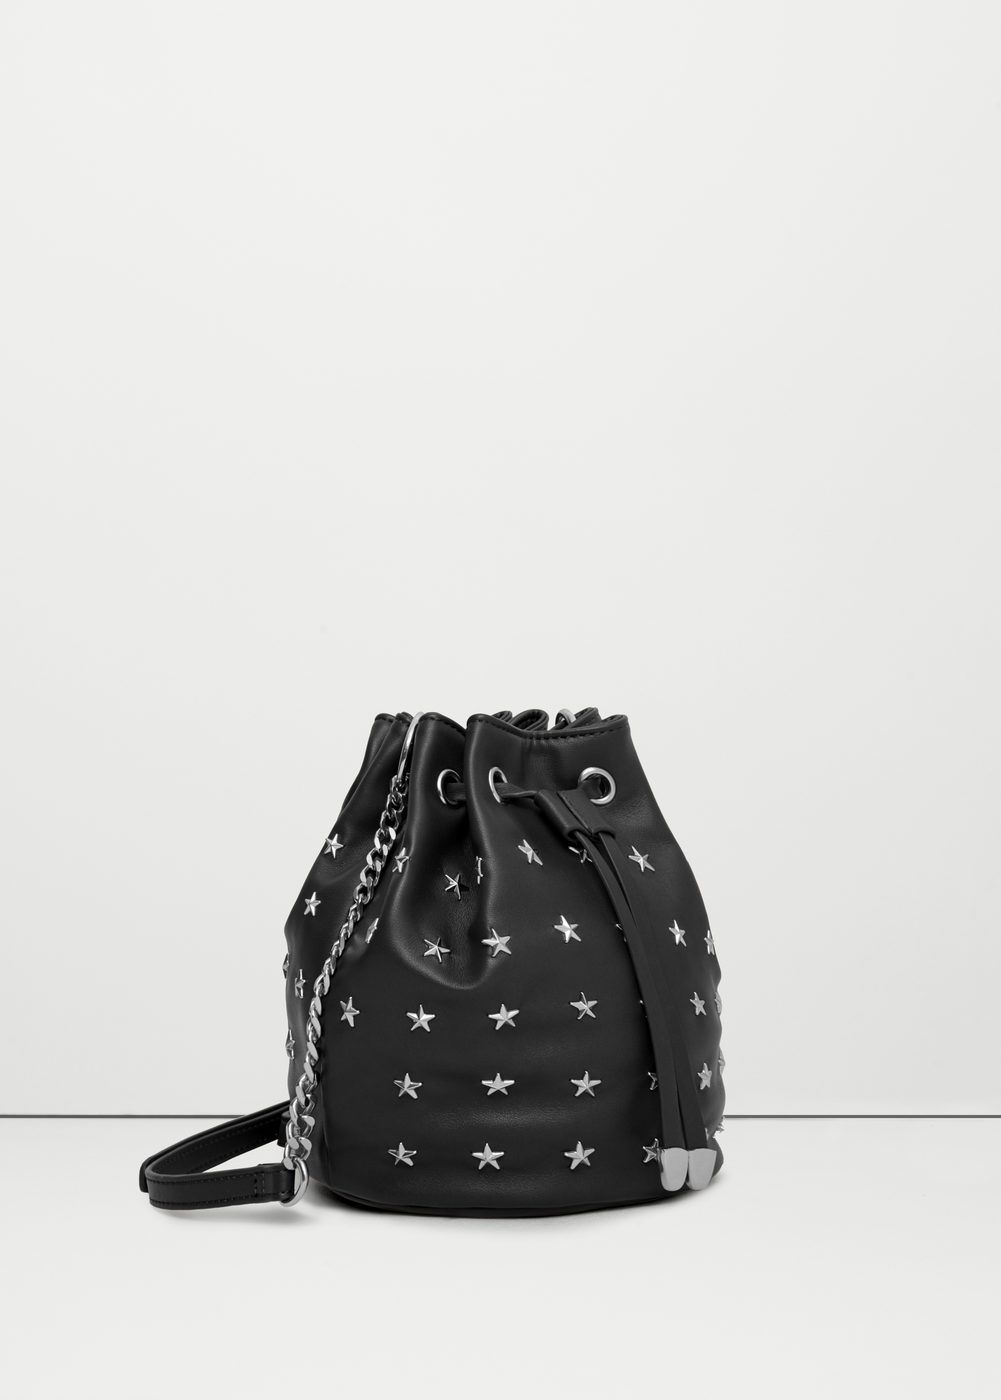 c89a3a7922 Studded bucket bag - Women in 2019